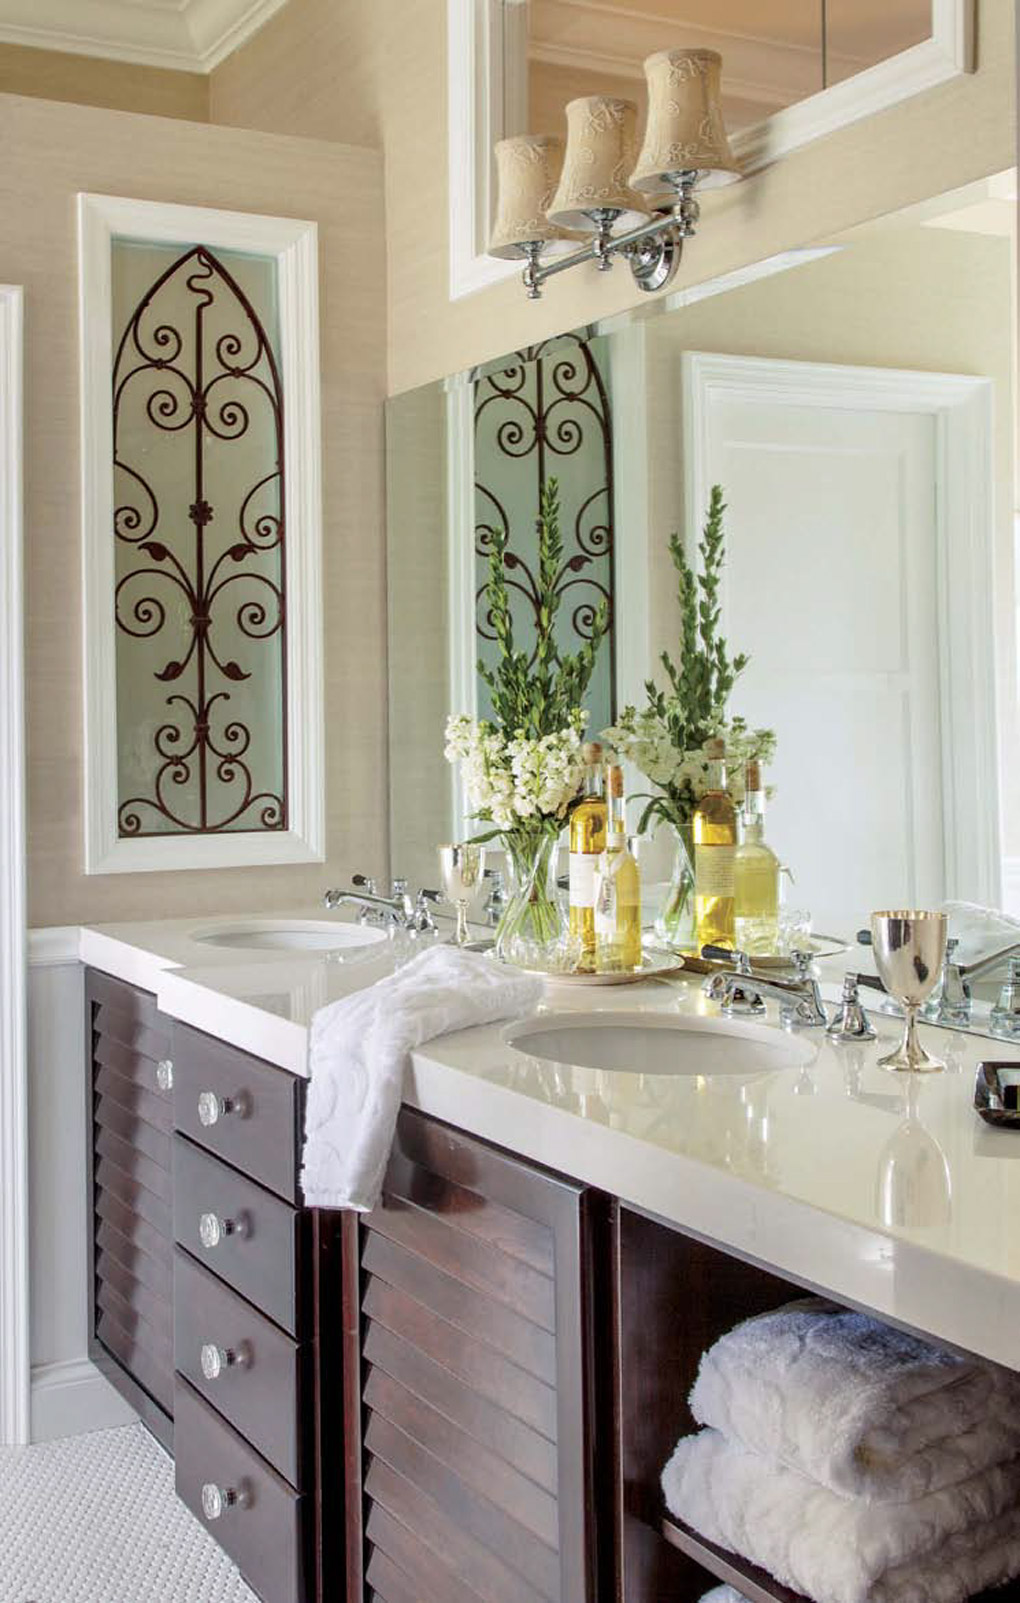 Double vanity bathroom sink area with dark wood drawers and tan accents on the wall and lighting with fresh flowers on the sink.